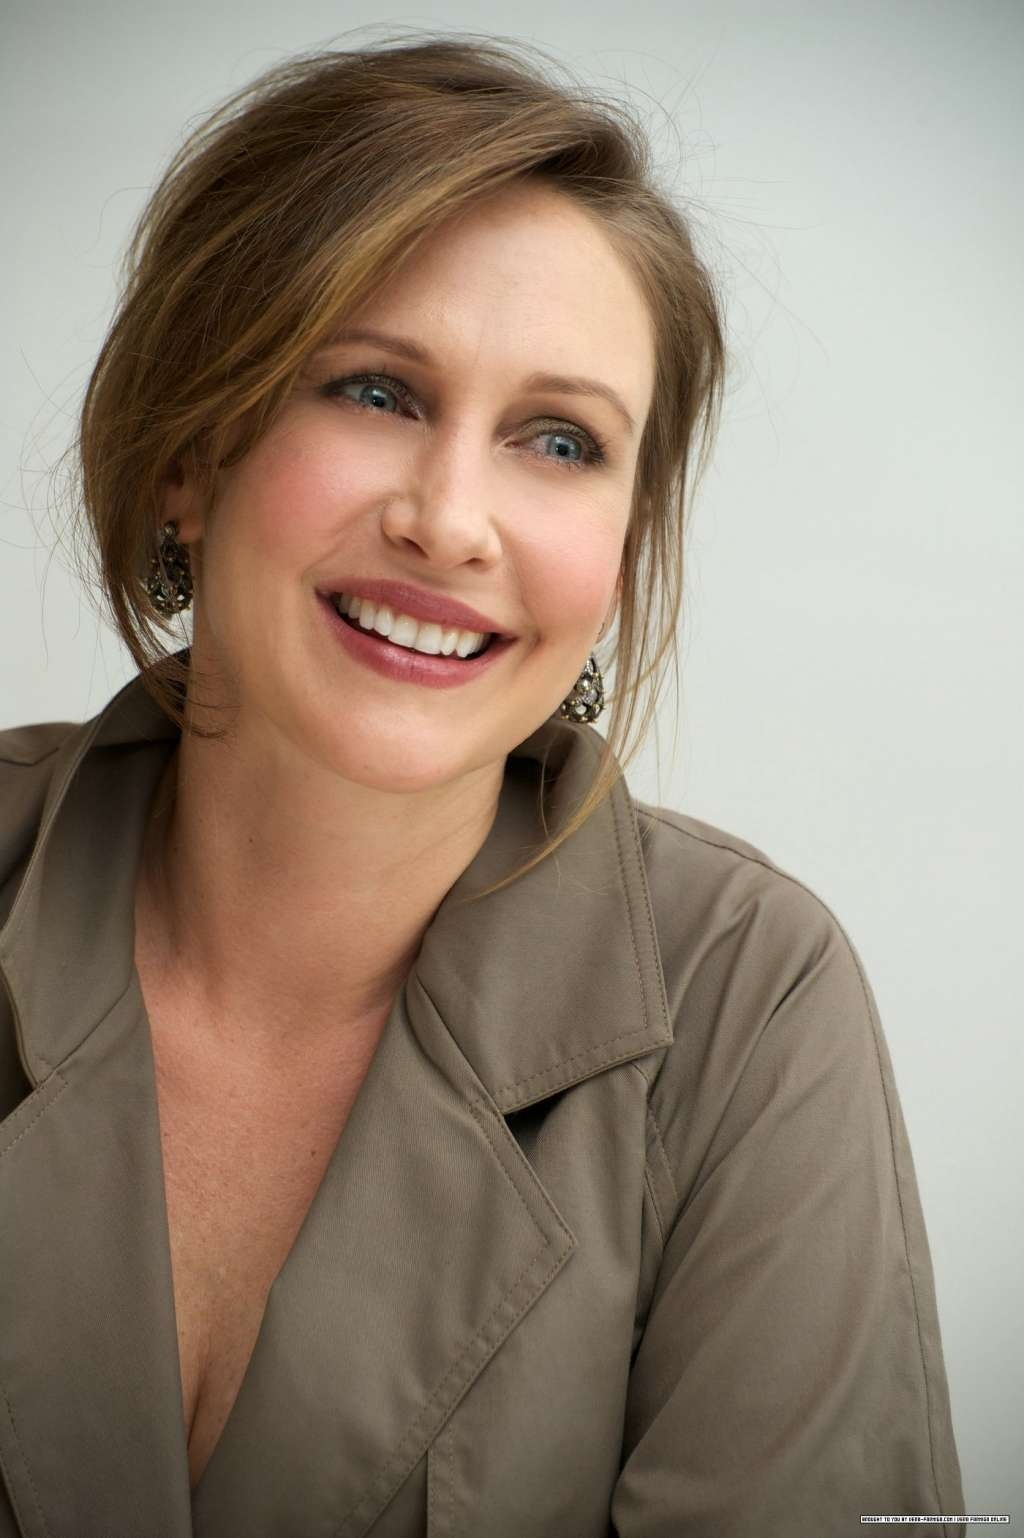 Vera Farmiga From Bates Motel Compares TV With Movies - On Edge TV